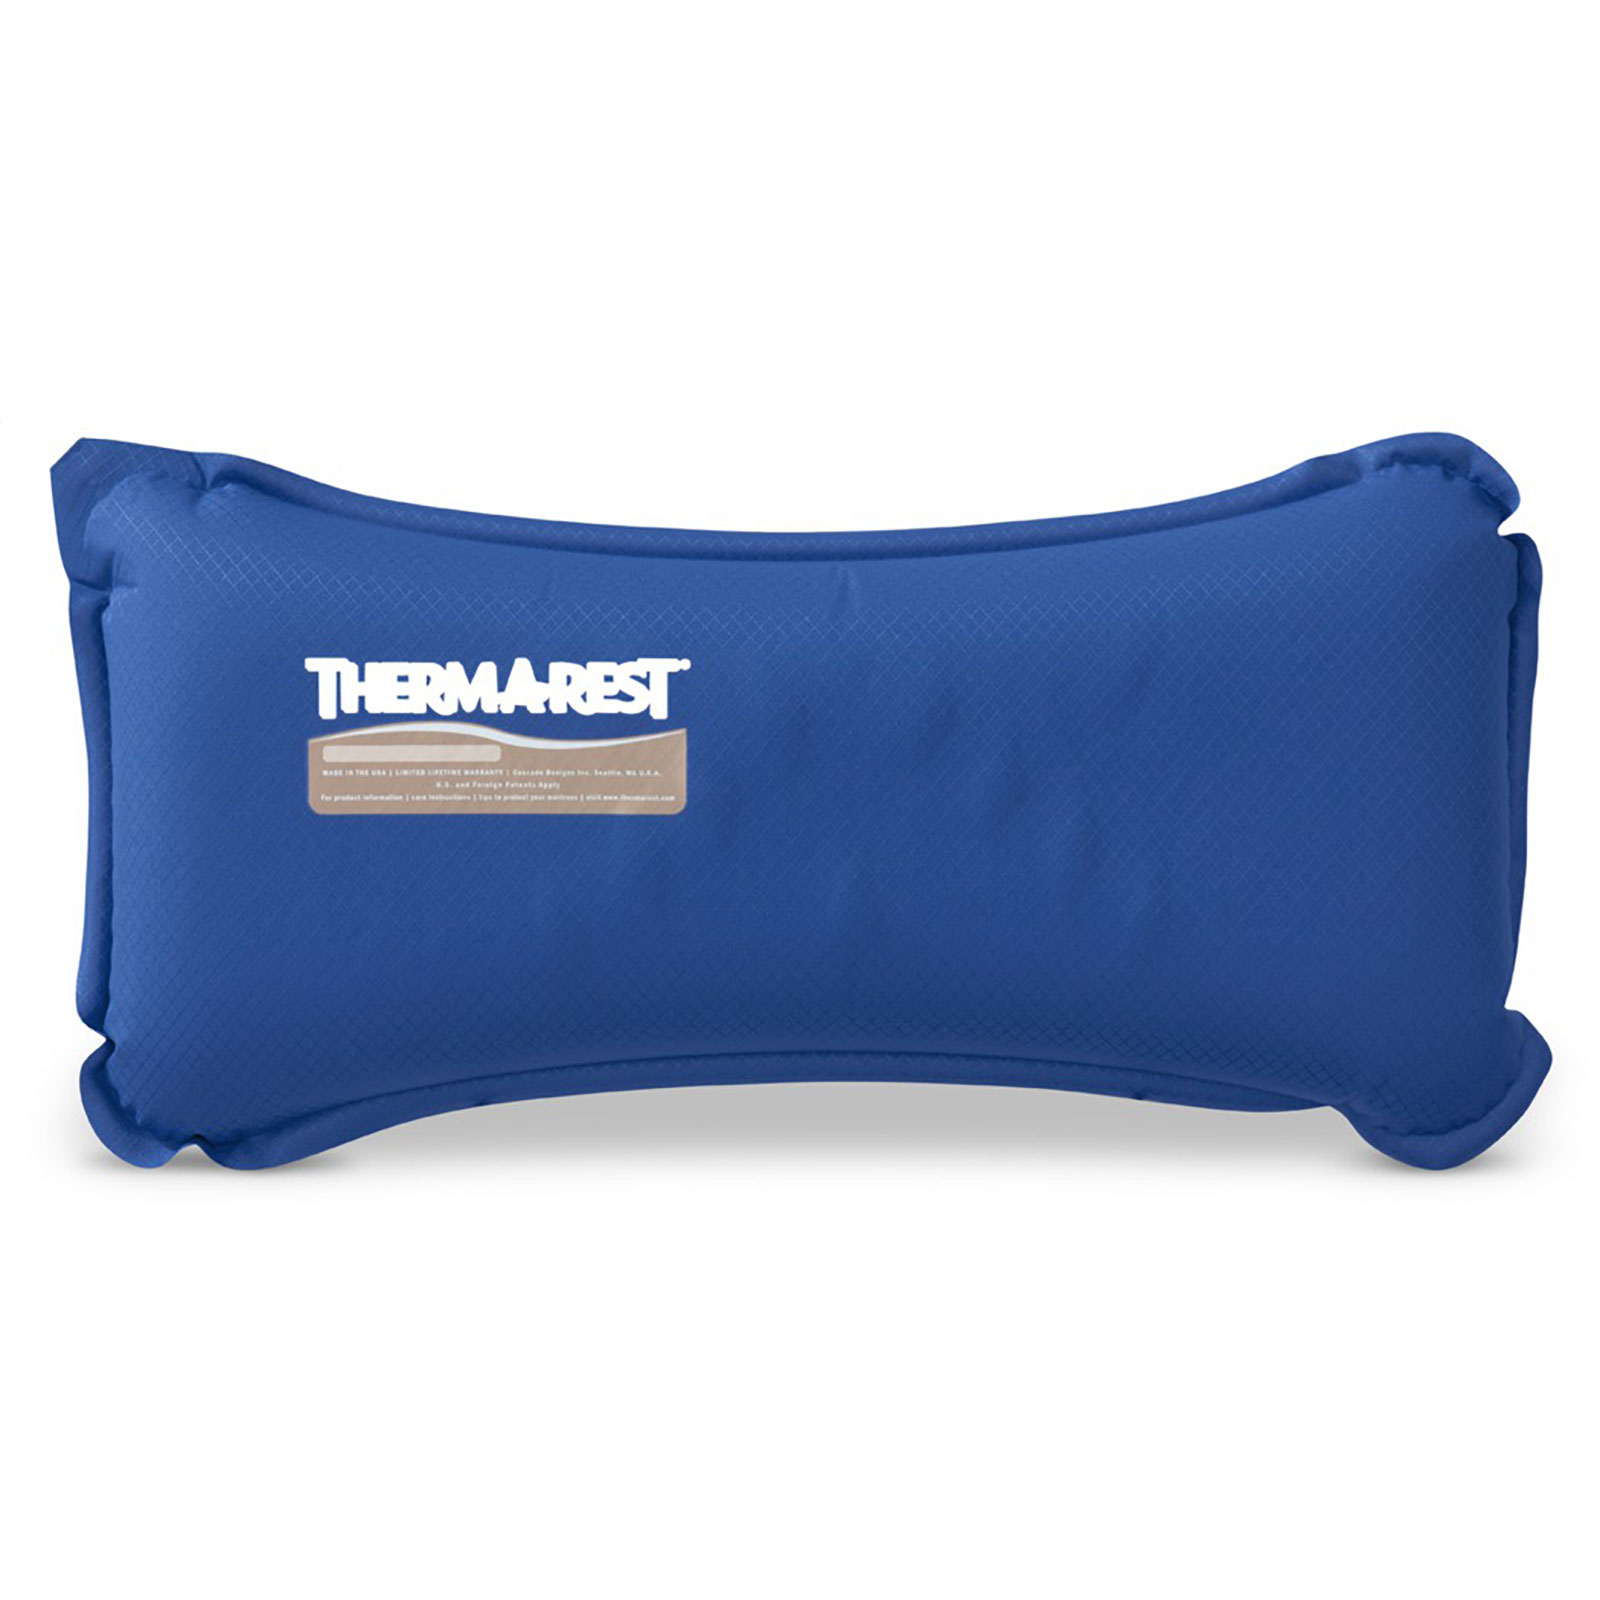 Therm A Rest Lumbar Small Travel Sitting Inflatable Back